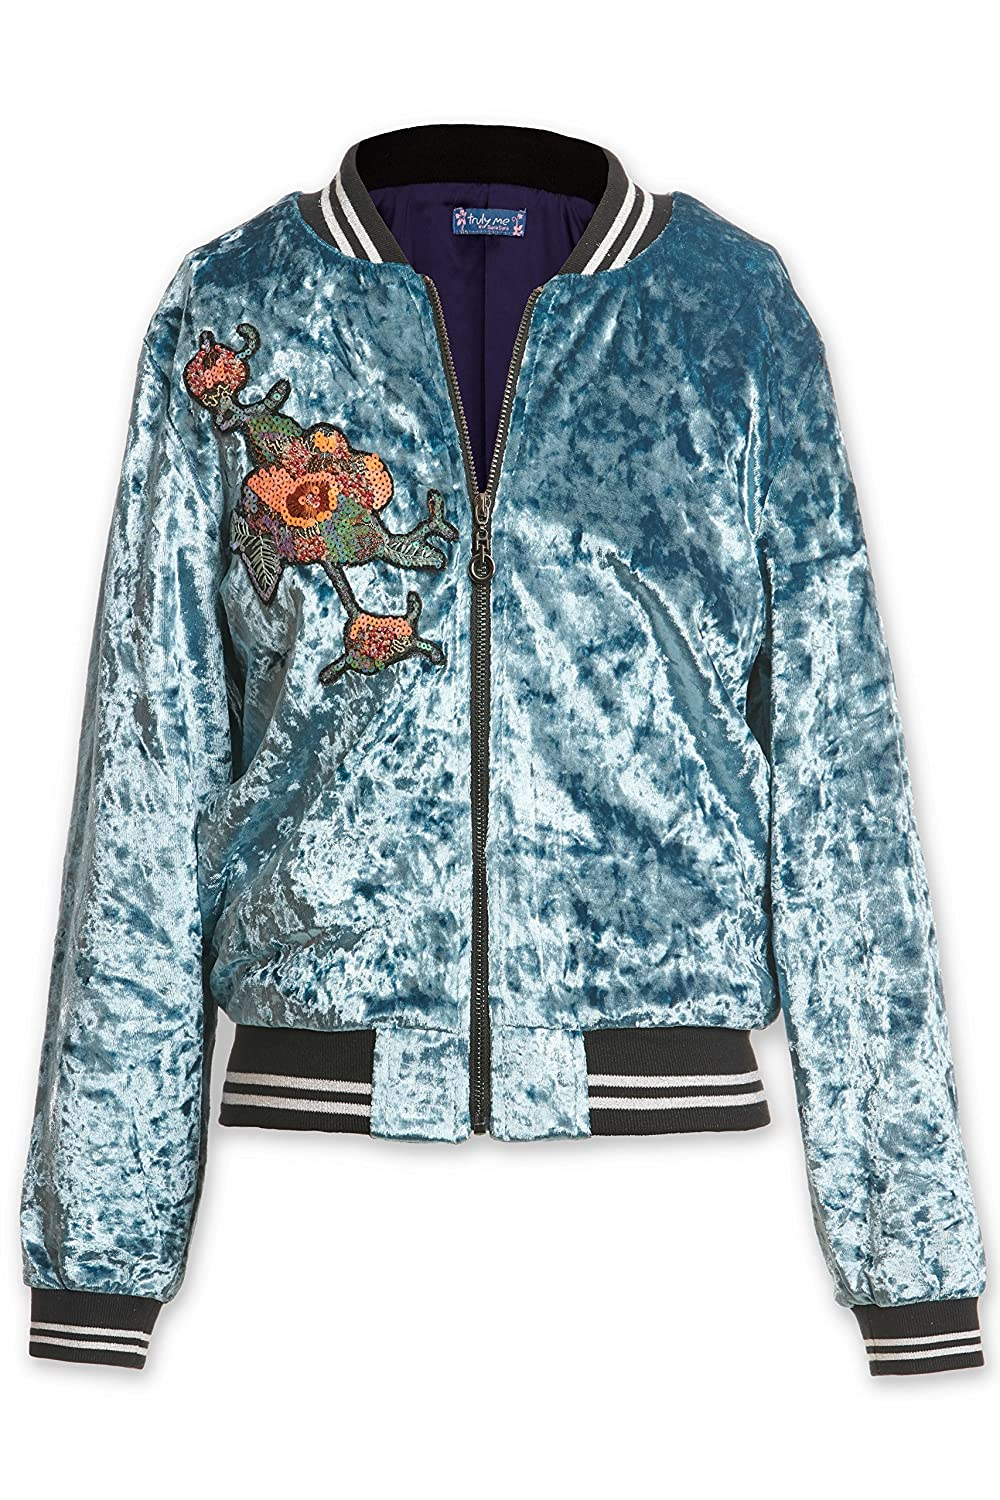 Truly Me, Big Girls Outerwear Jackets, Cardigans, Sweaters (Many Options), 7-16 (Small-8, Teal) R23235-S